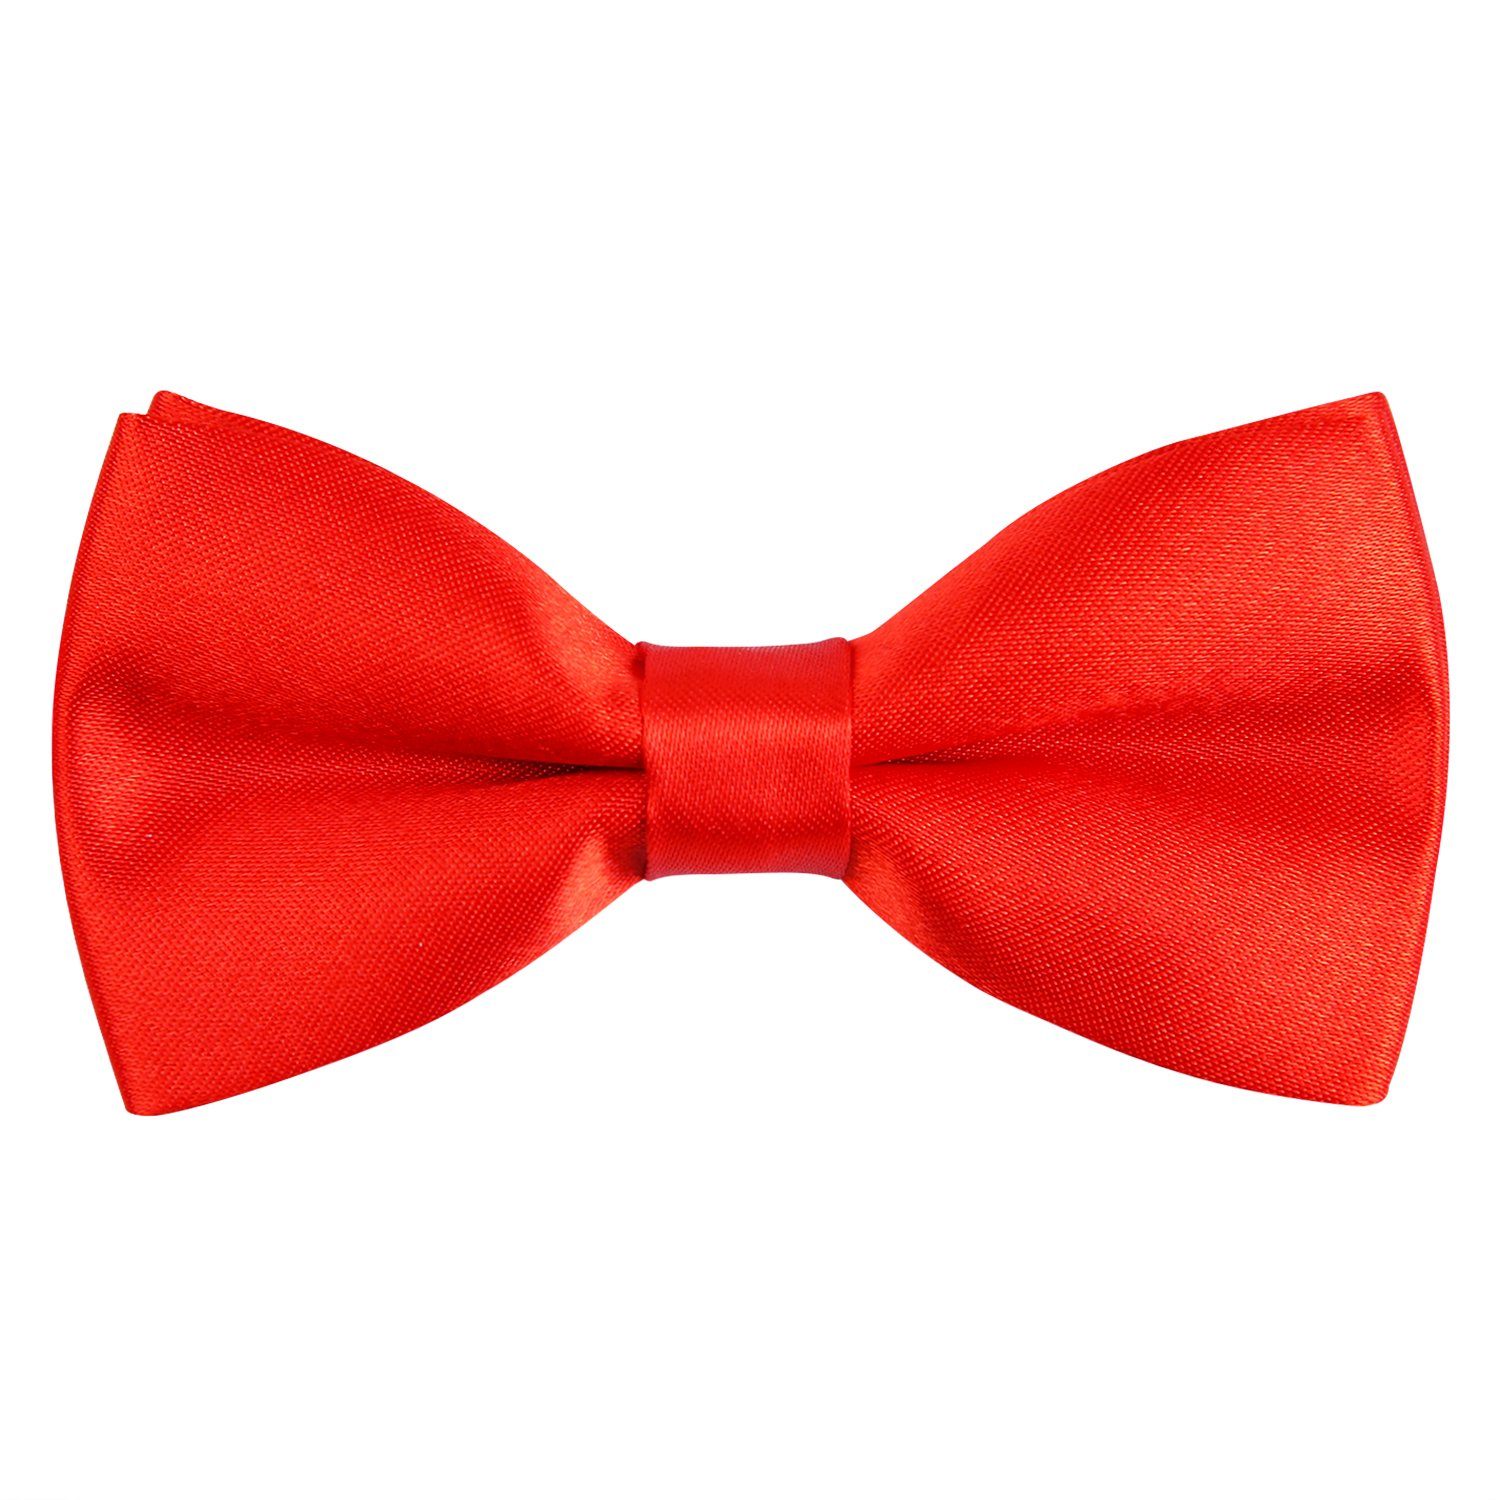 Alizeal Boys Tuxedo Pre Tied Bow Ties (Orange) CA070-Orange